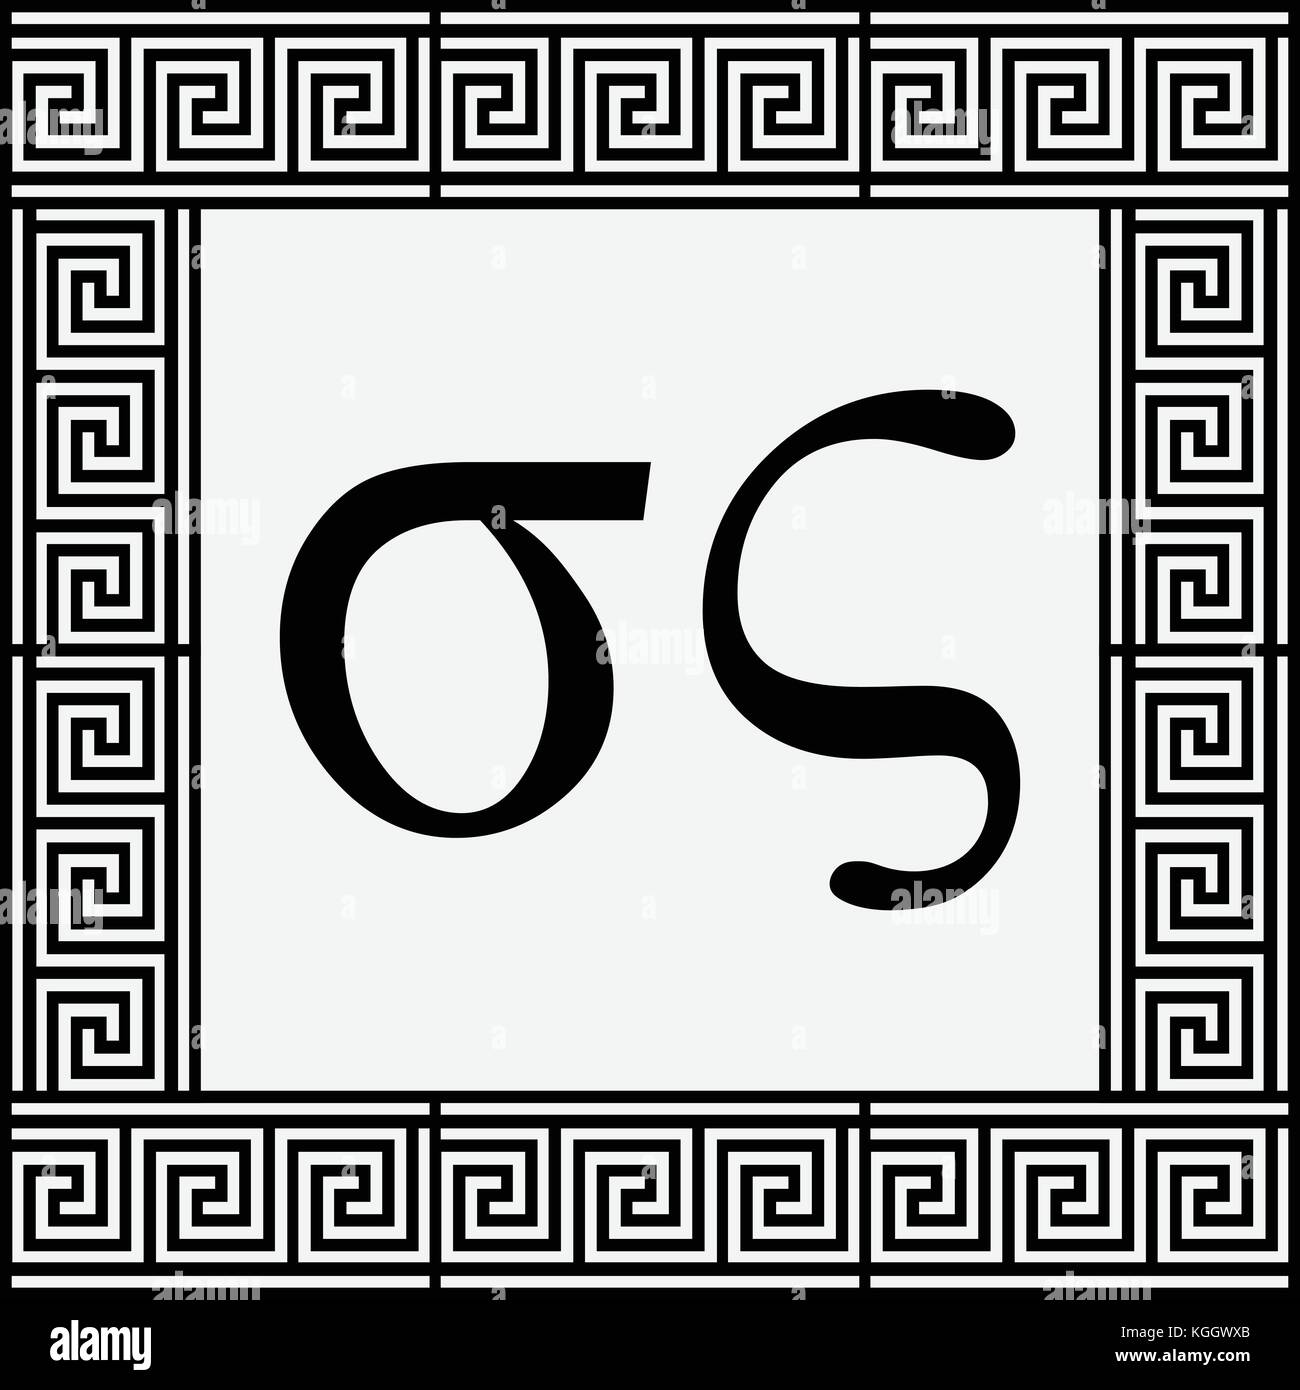 Sigma symbol stock photos sigma symbol stock images alamy sigma greek small letters icon sigma symbols in ancient greek frame vector illustration biocorpaavc Images